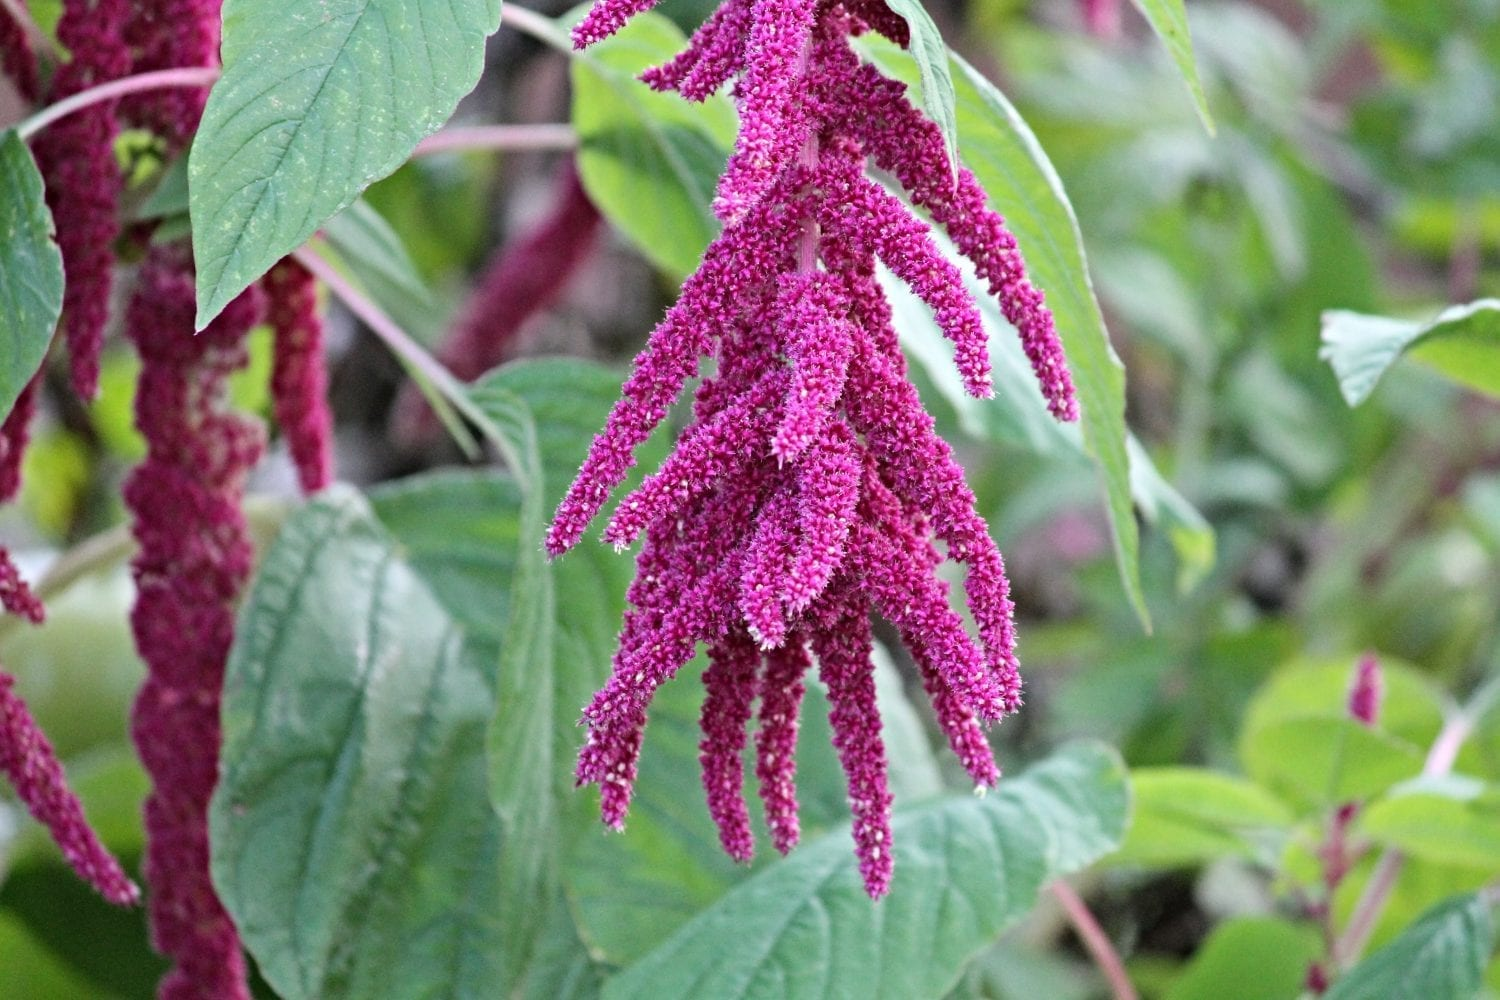 Amaranth-Naturanrg-01-photo.jpeg